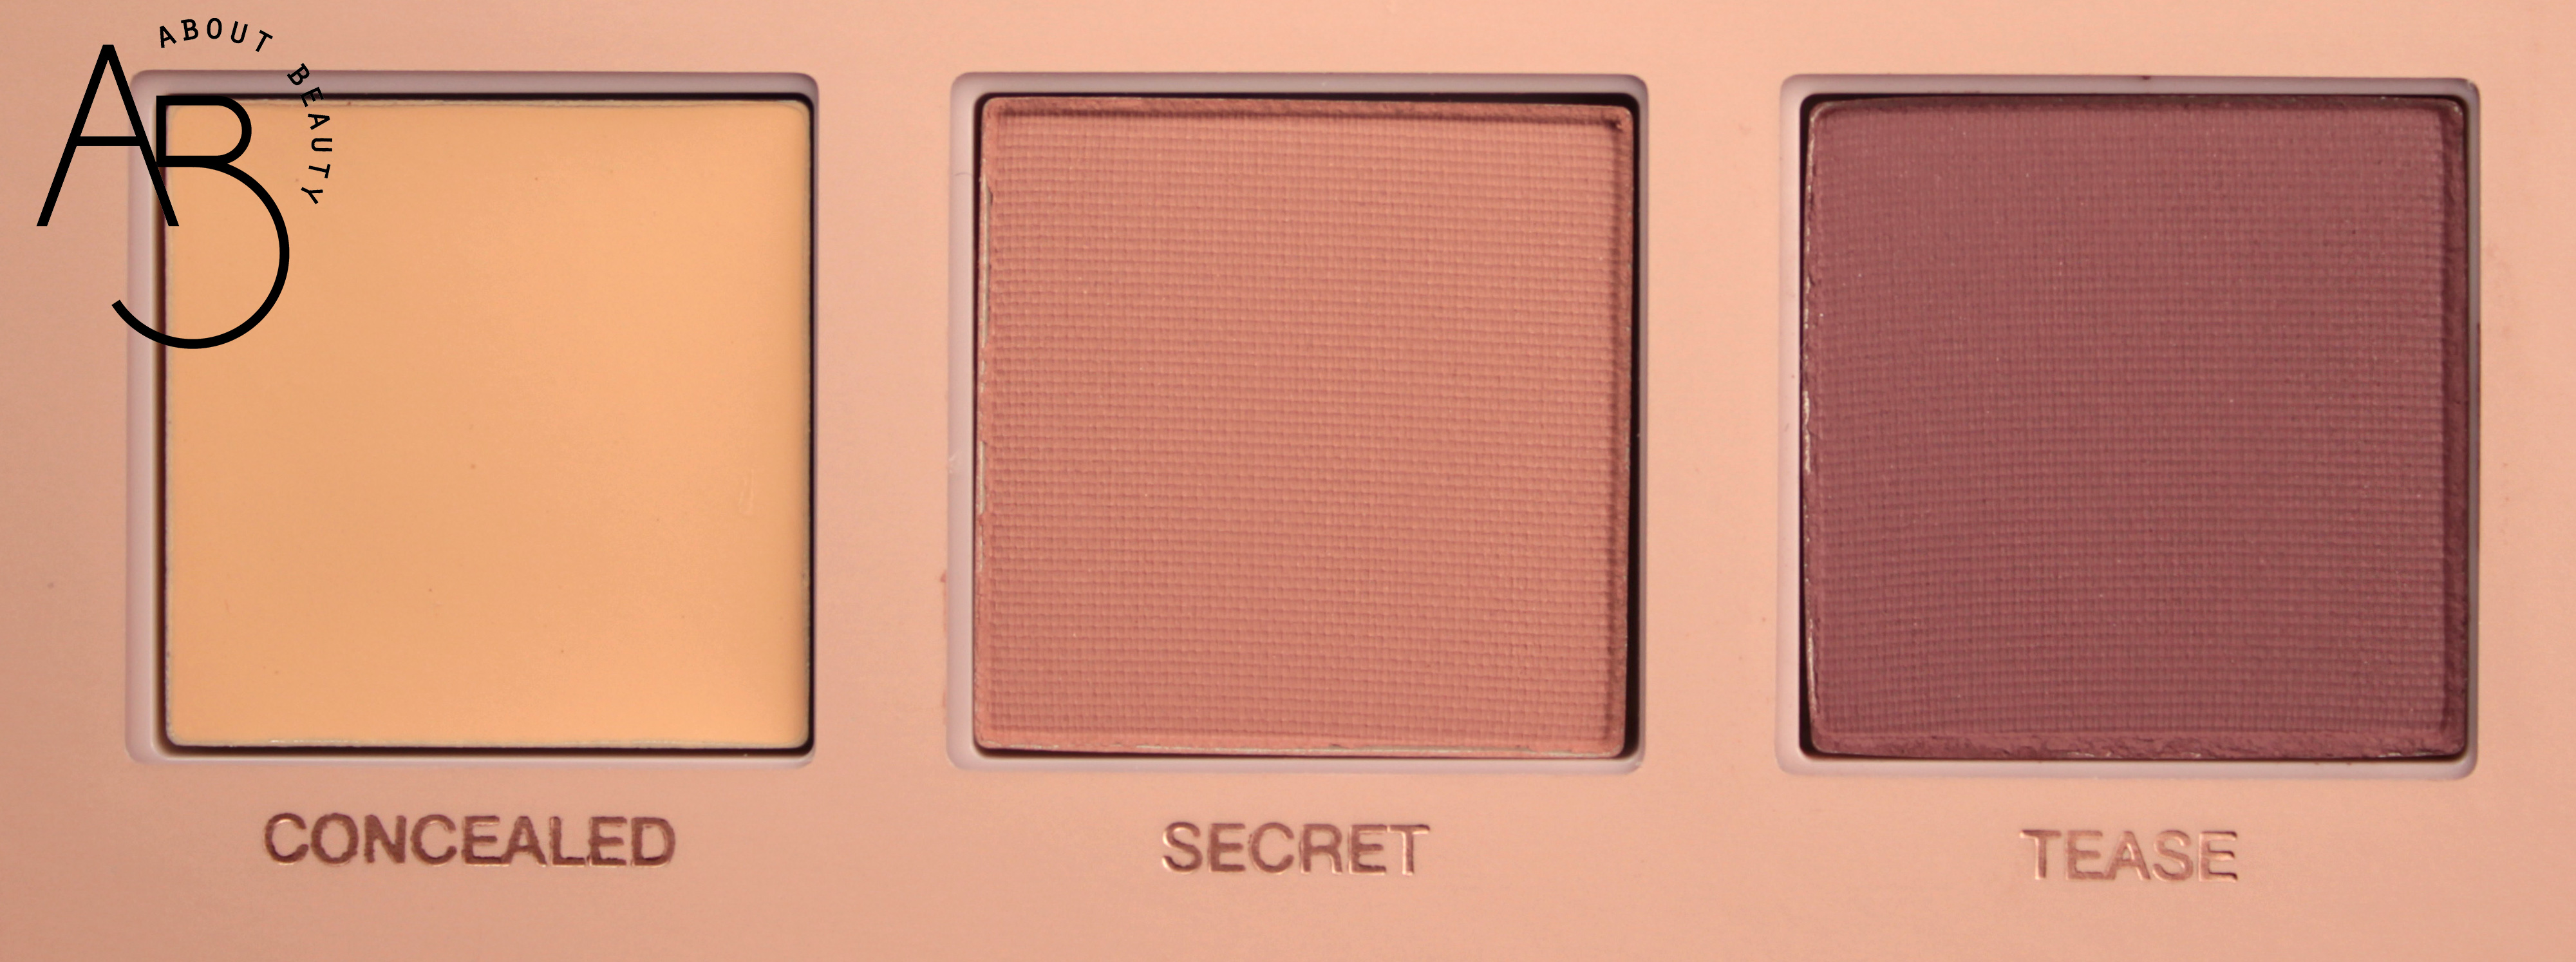 Huda Beauty New Nude Eyeshadow Palette Ombretti - review recensione info prezzo dove acquistare swatch sconto - Concealed Secret Tease